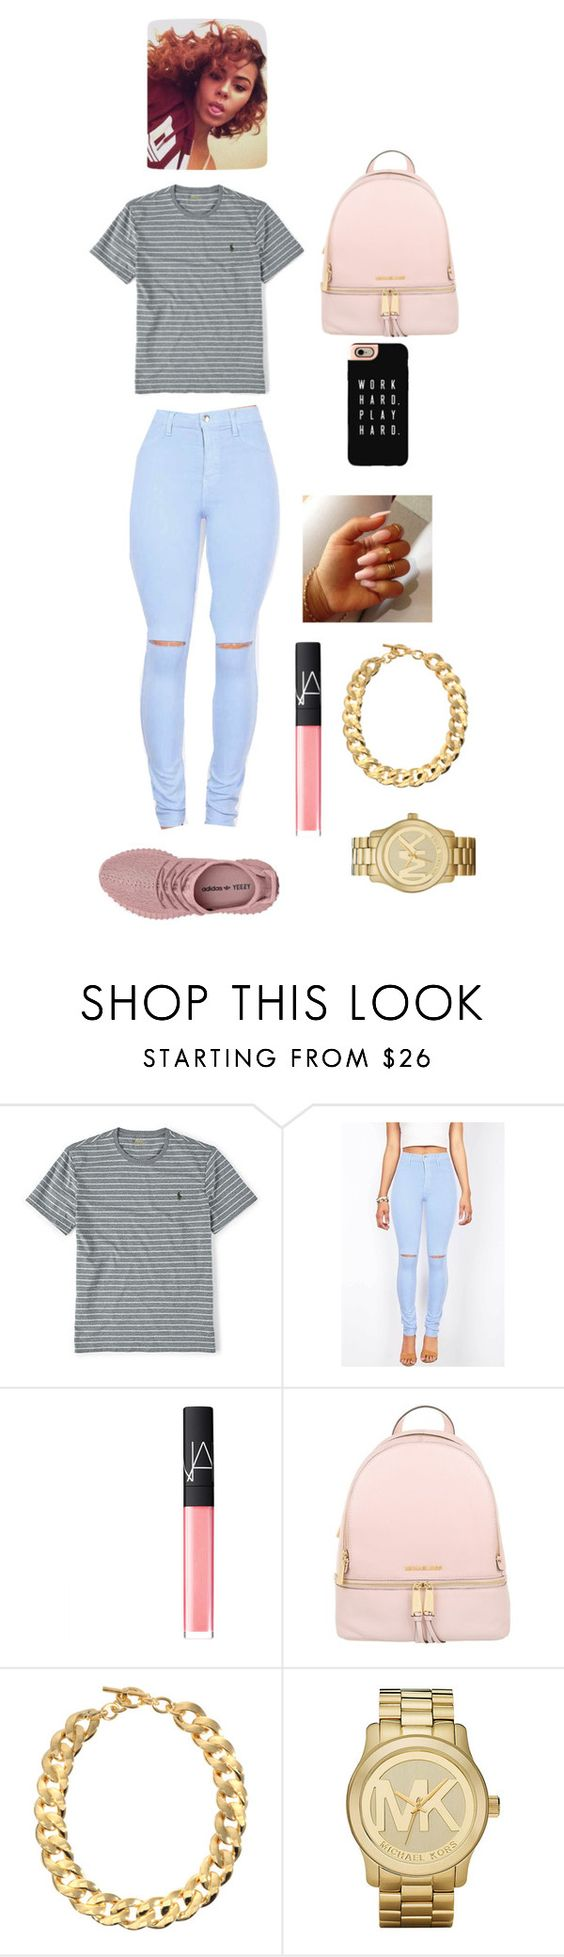 """""""💕💕💕💕💕😛😊"""" by cloutqueex ❤ liked on Polyvore featuring Ralph Lauren, NARS Cosmetics, Michael Kors and Casetify"""